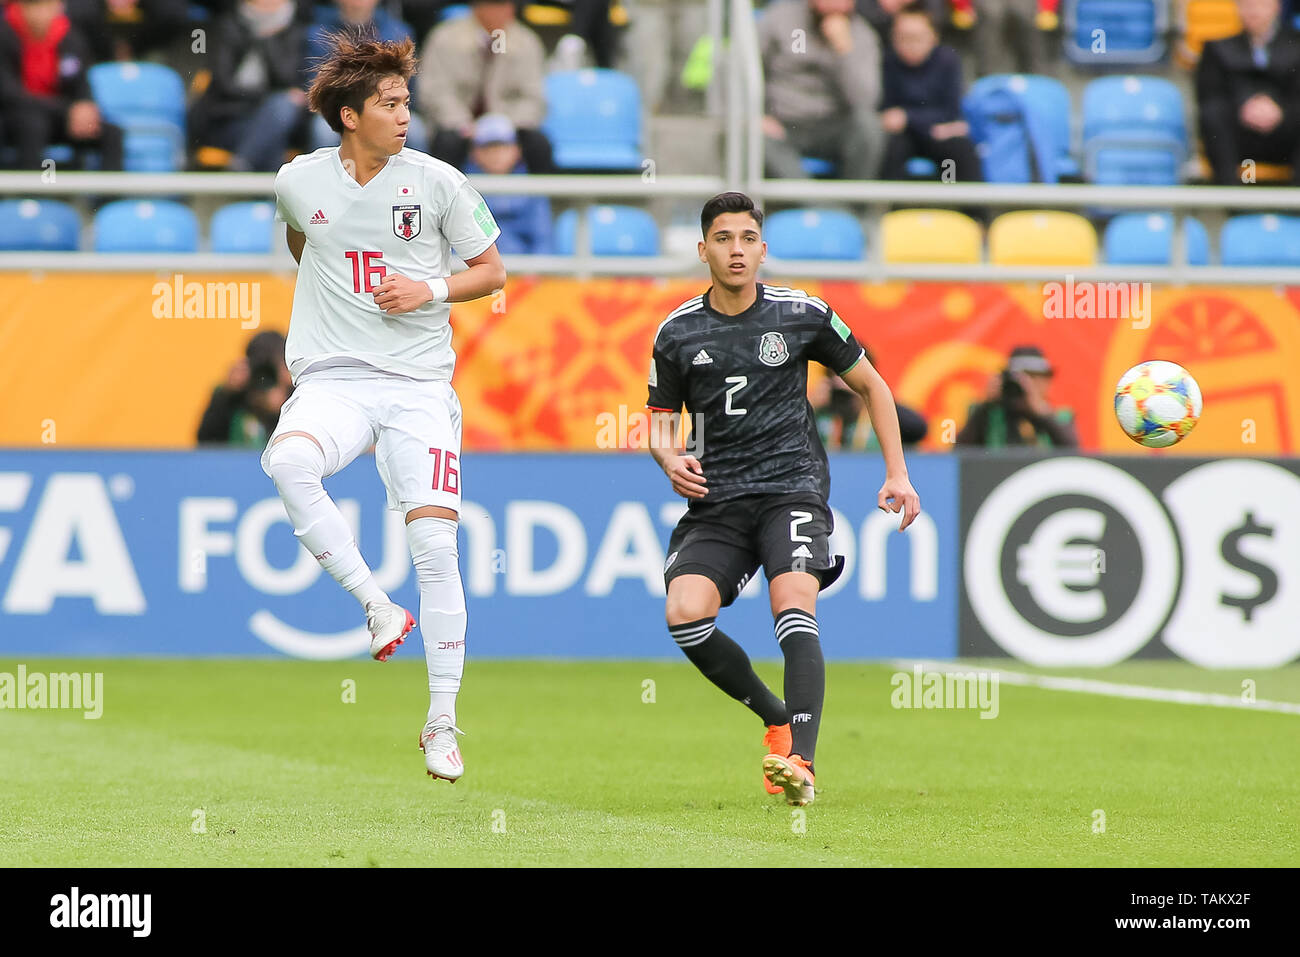 Gdynia Stadium, Gdynia, Poland - 26th May, 2019: Kota Yamada from Japan and Kevin Alvarez from Mexico seen in action during FIFA U-20 World Cup match between Mexico and Japan (GROUP B) in Gdynia. (Final score; Mexico 0:3 Japan) - Stock Image